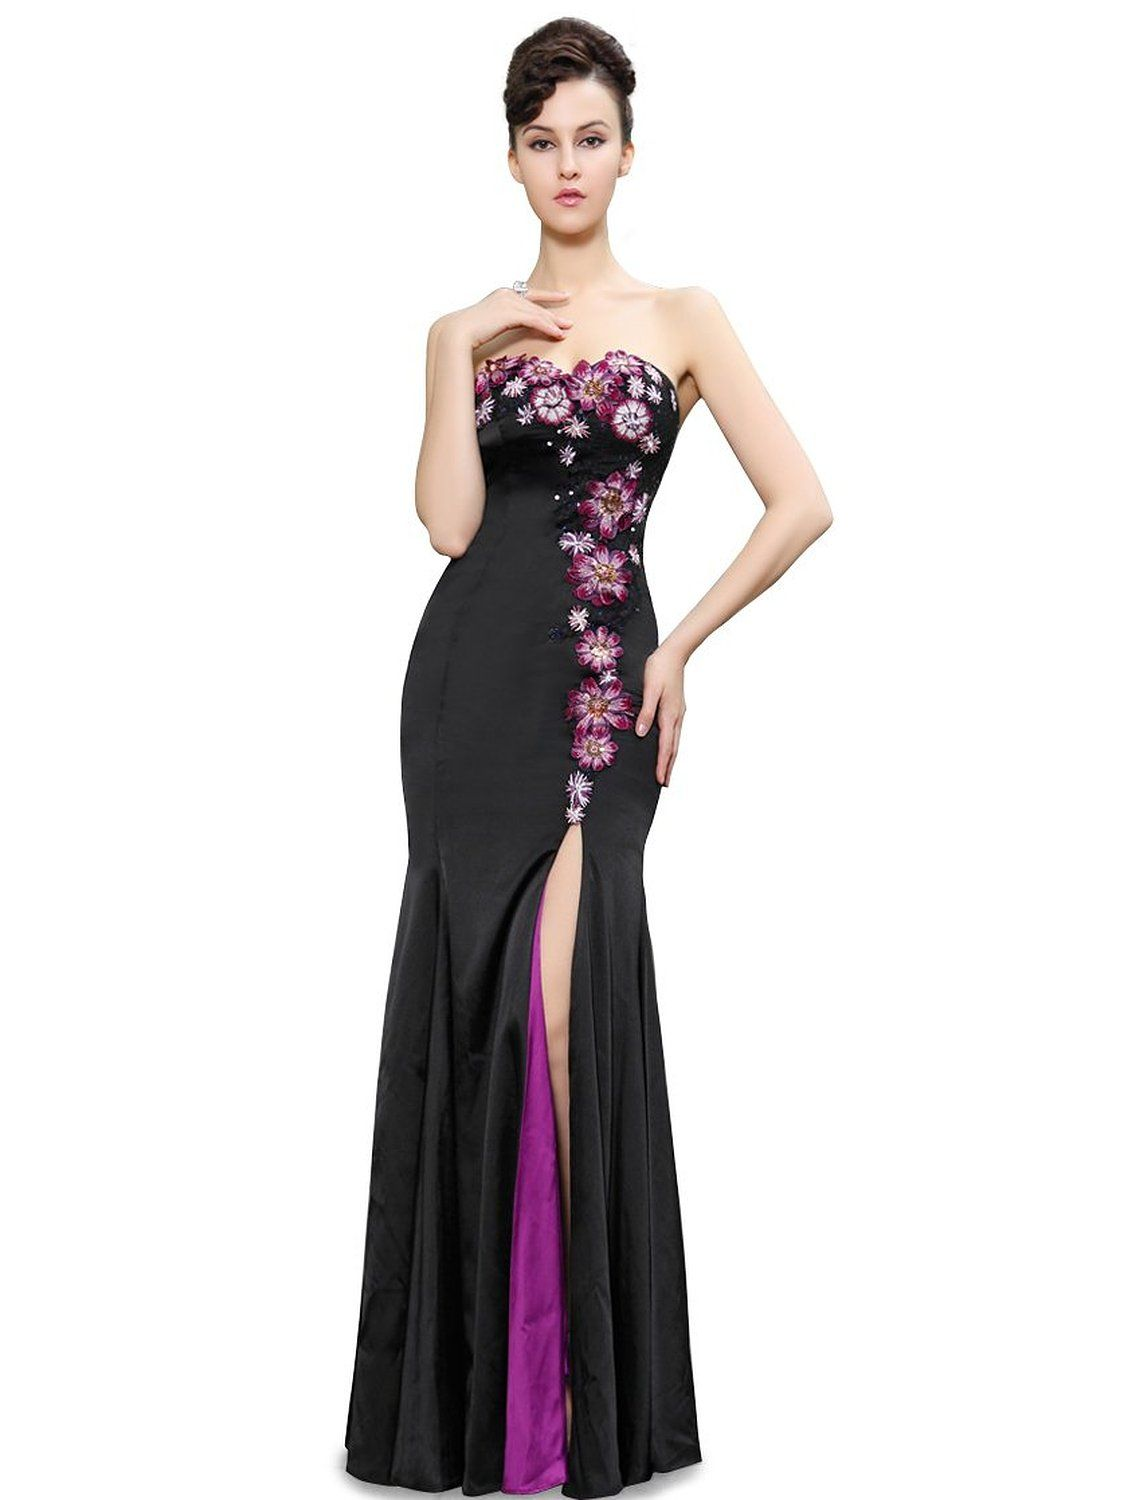 Strapless trailing evening dress padded enough for